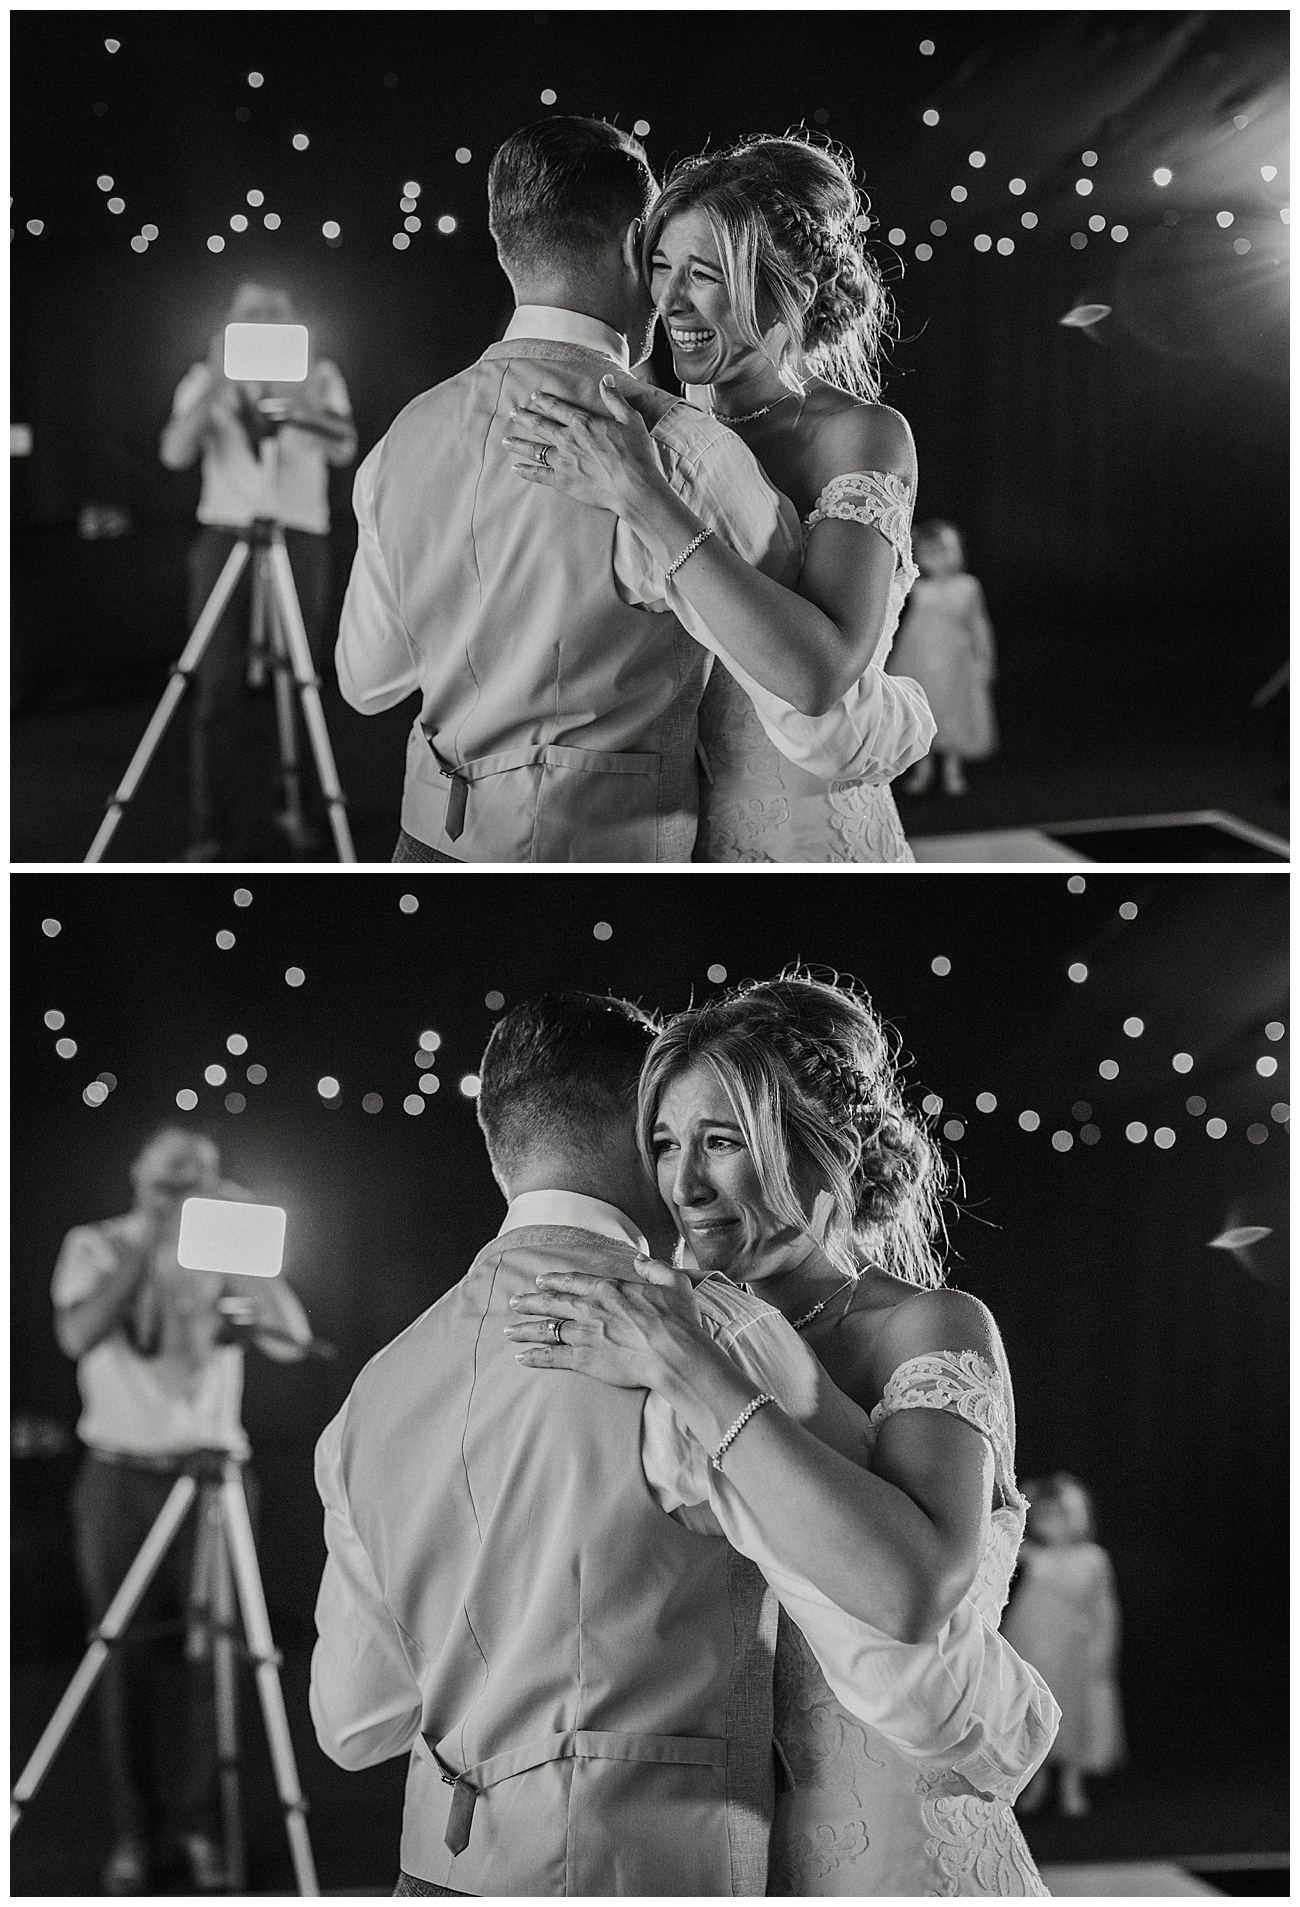 The bride cries during their first dance